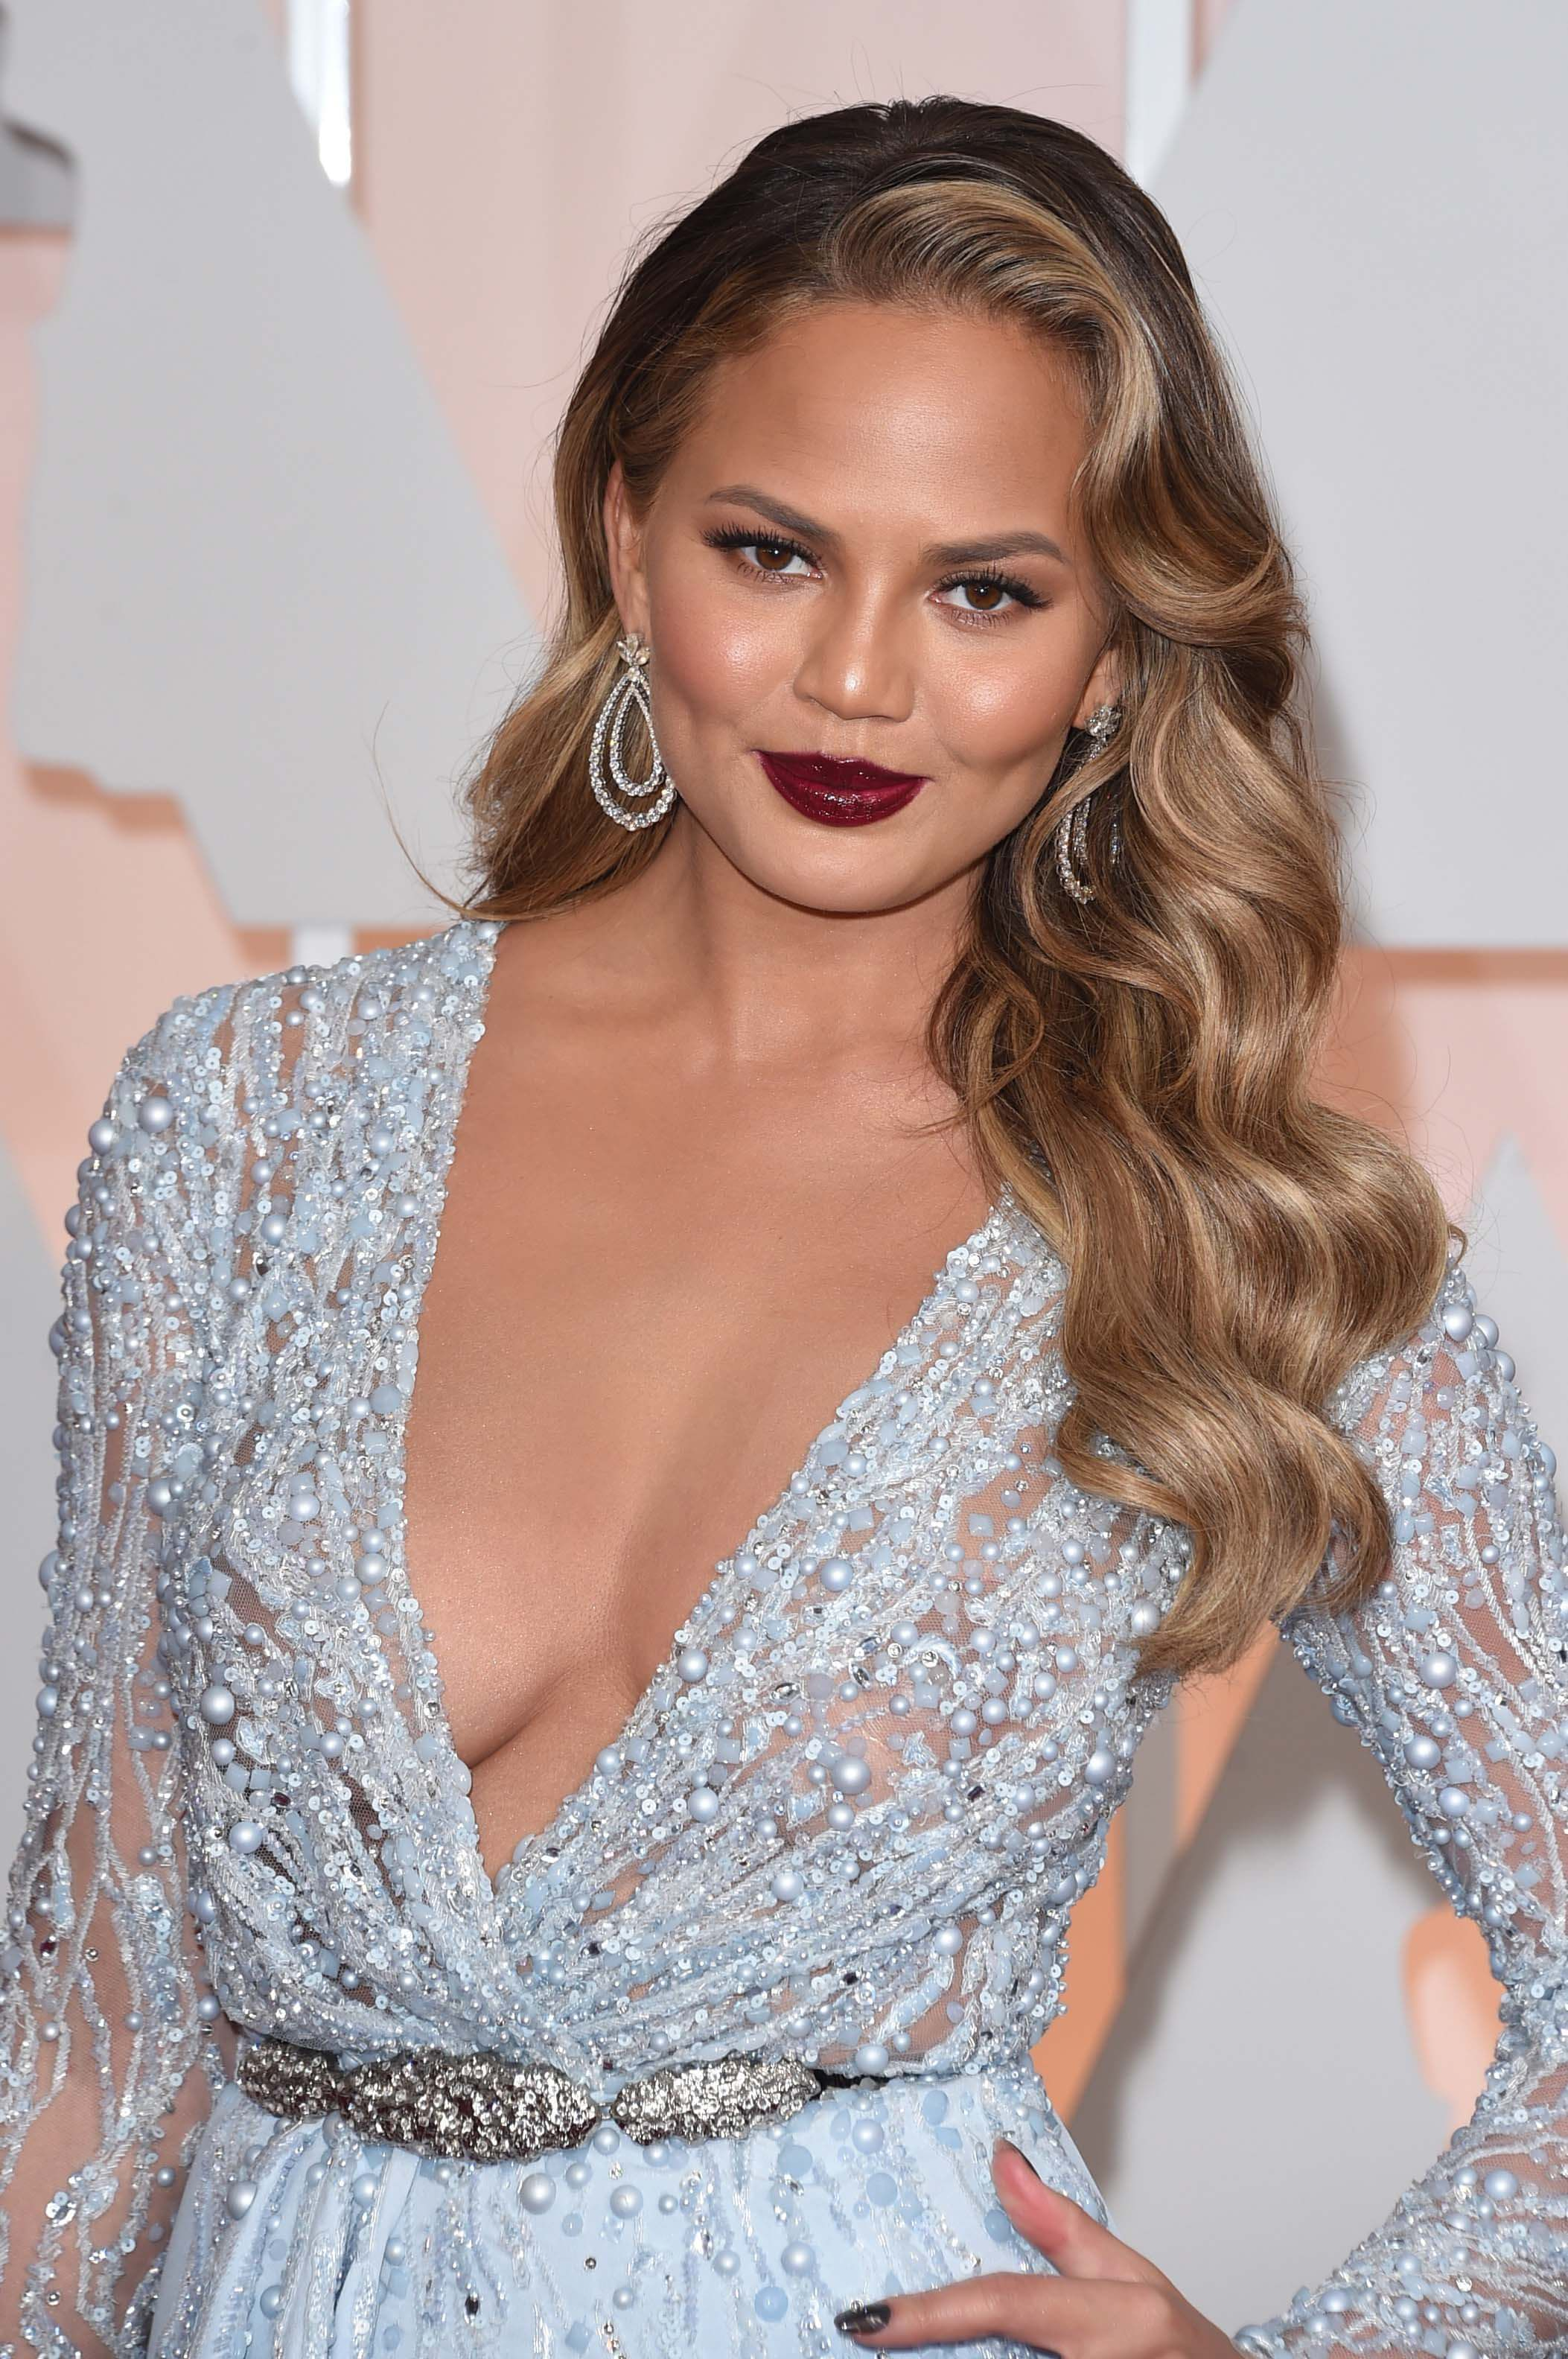 Chrissy Teigen retro Hollywood hairstyles